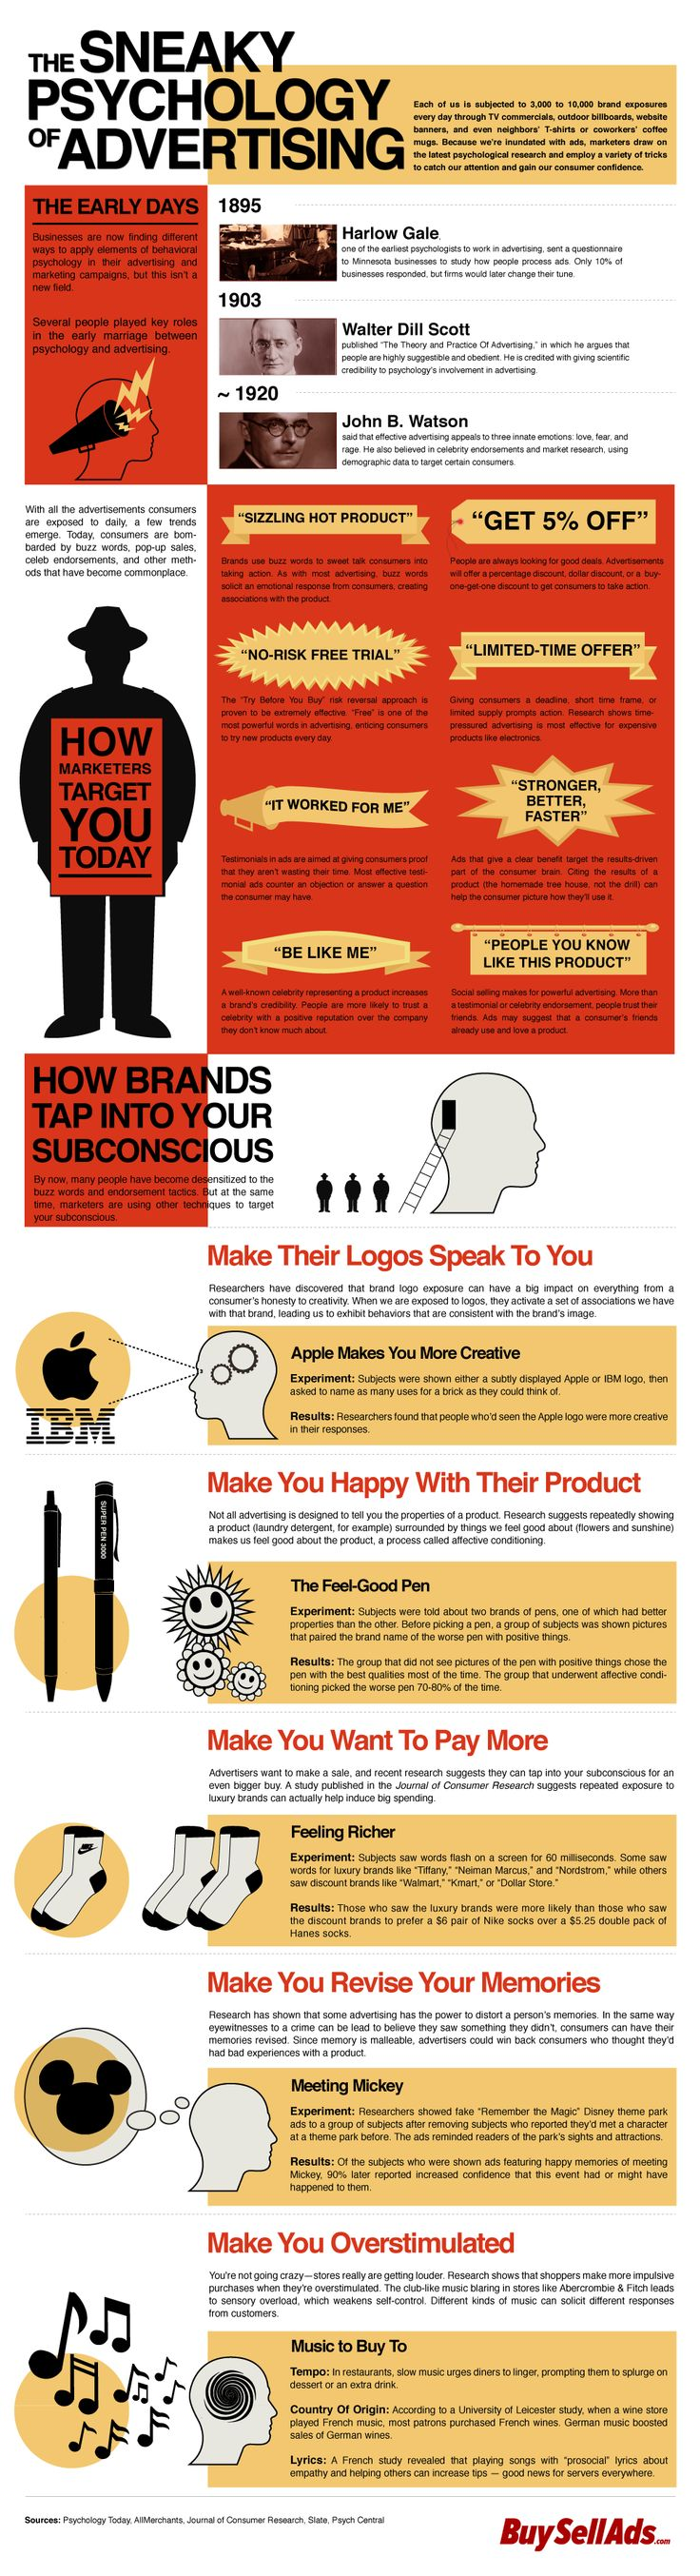 Businesses are now finding different ways to apply elements of behavioral psychology in their advertising and marketing campaigns, but this isn't a new field. This infographic shows you what psychologist's and advertising professionals have been up to for years.